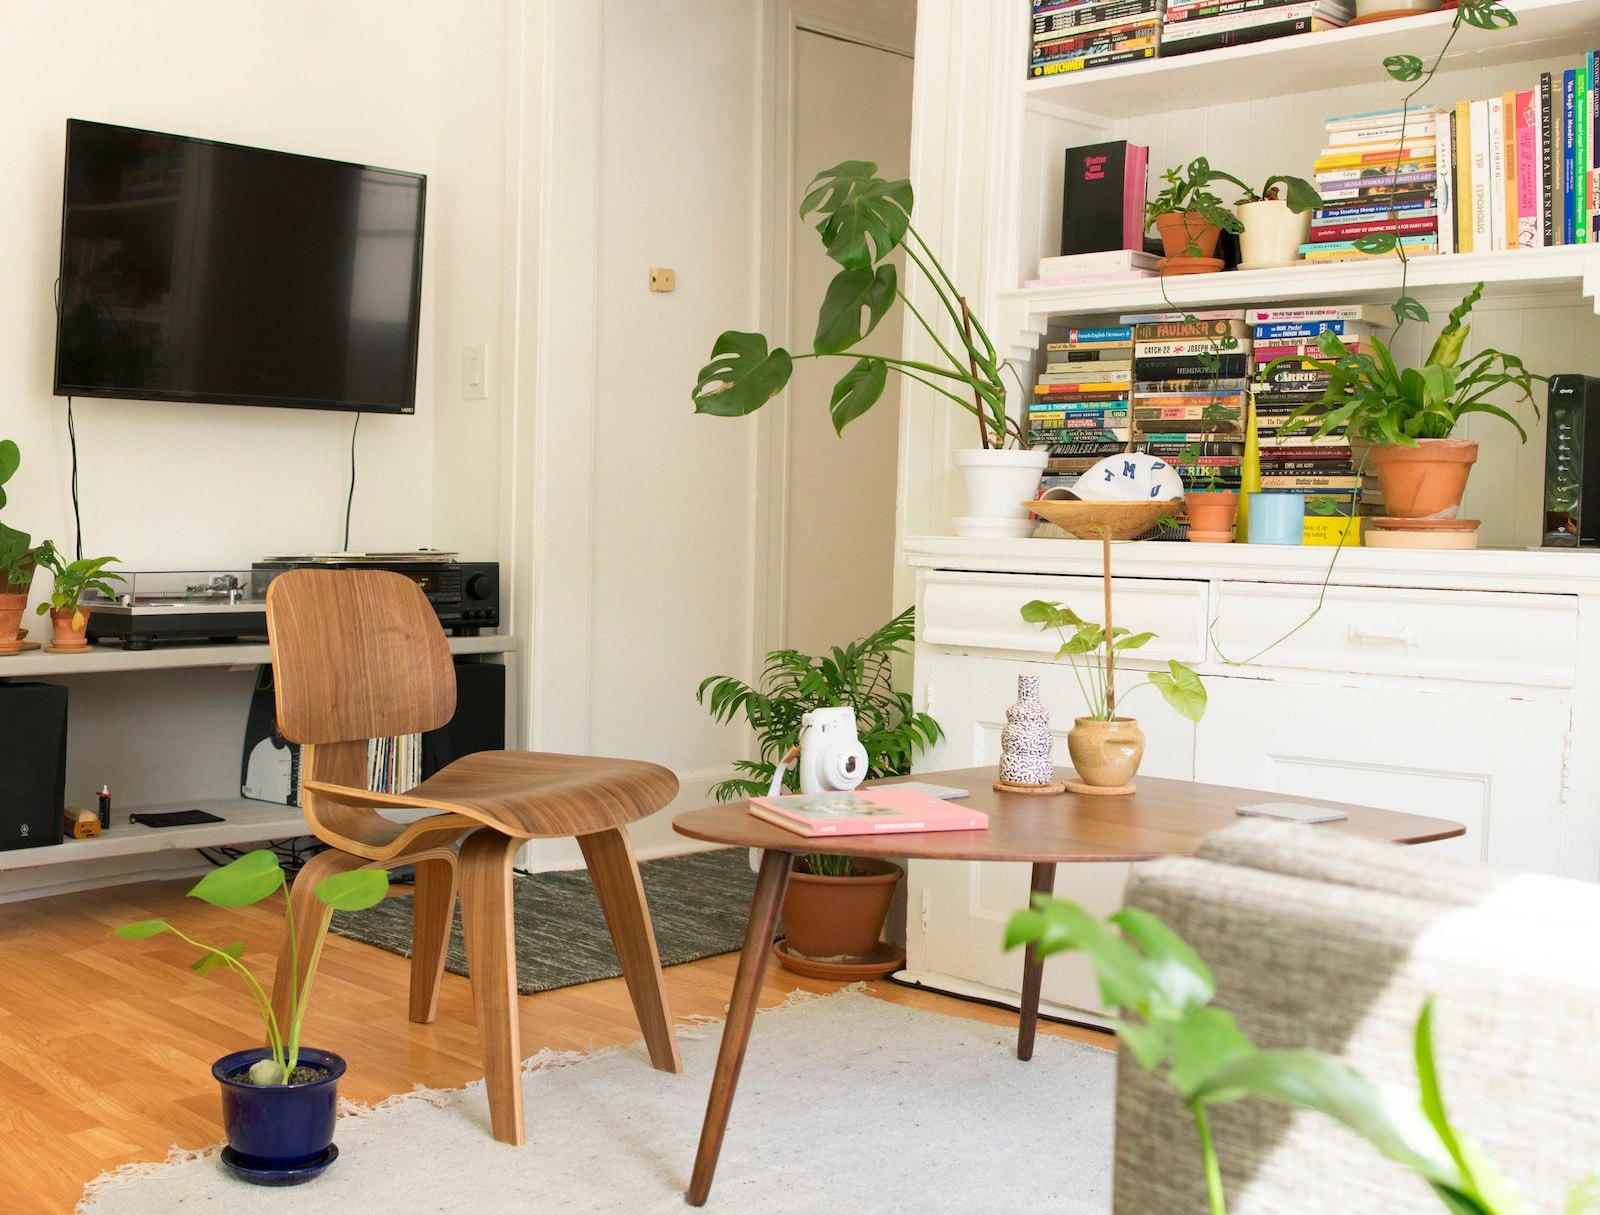 20 Brilliant NYC Apartment Decorating Tips And Ideas On A ... on Apartment Decor Ideas On A Budget  id=91534